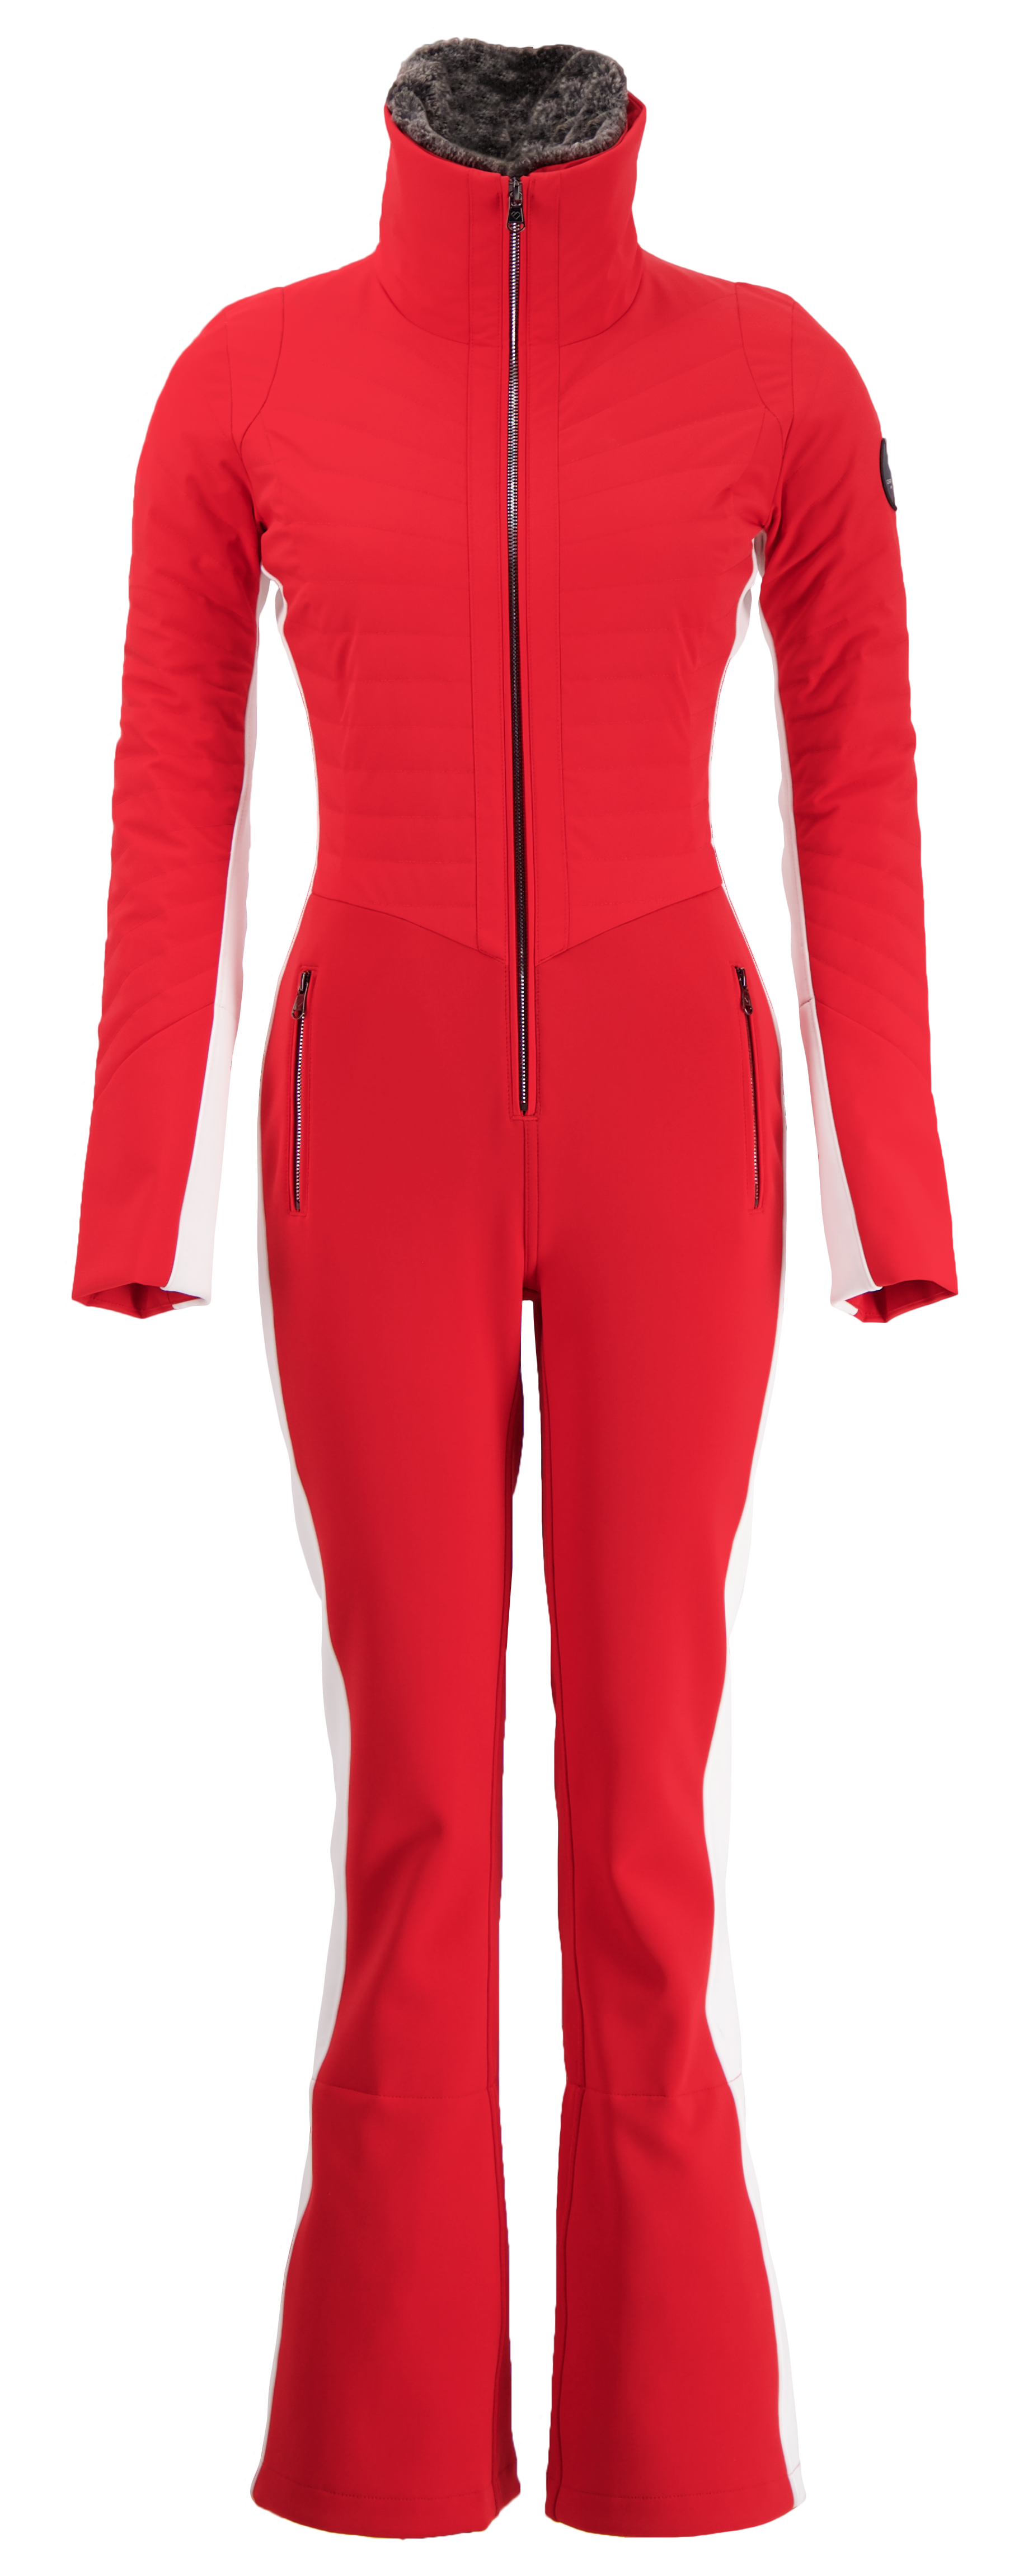 Under Armour Cold Gear Base 2.0 1/4 Zip Top and Cold Gear Action Leggings